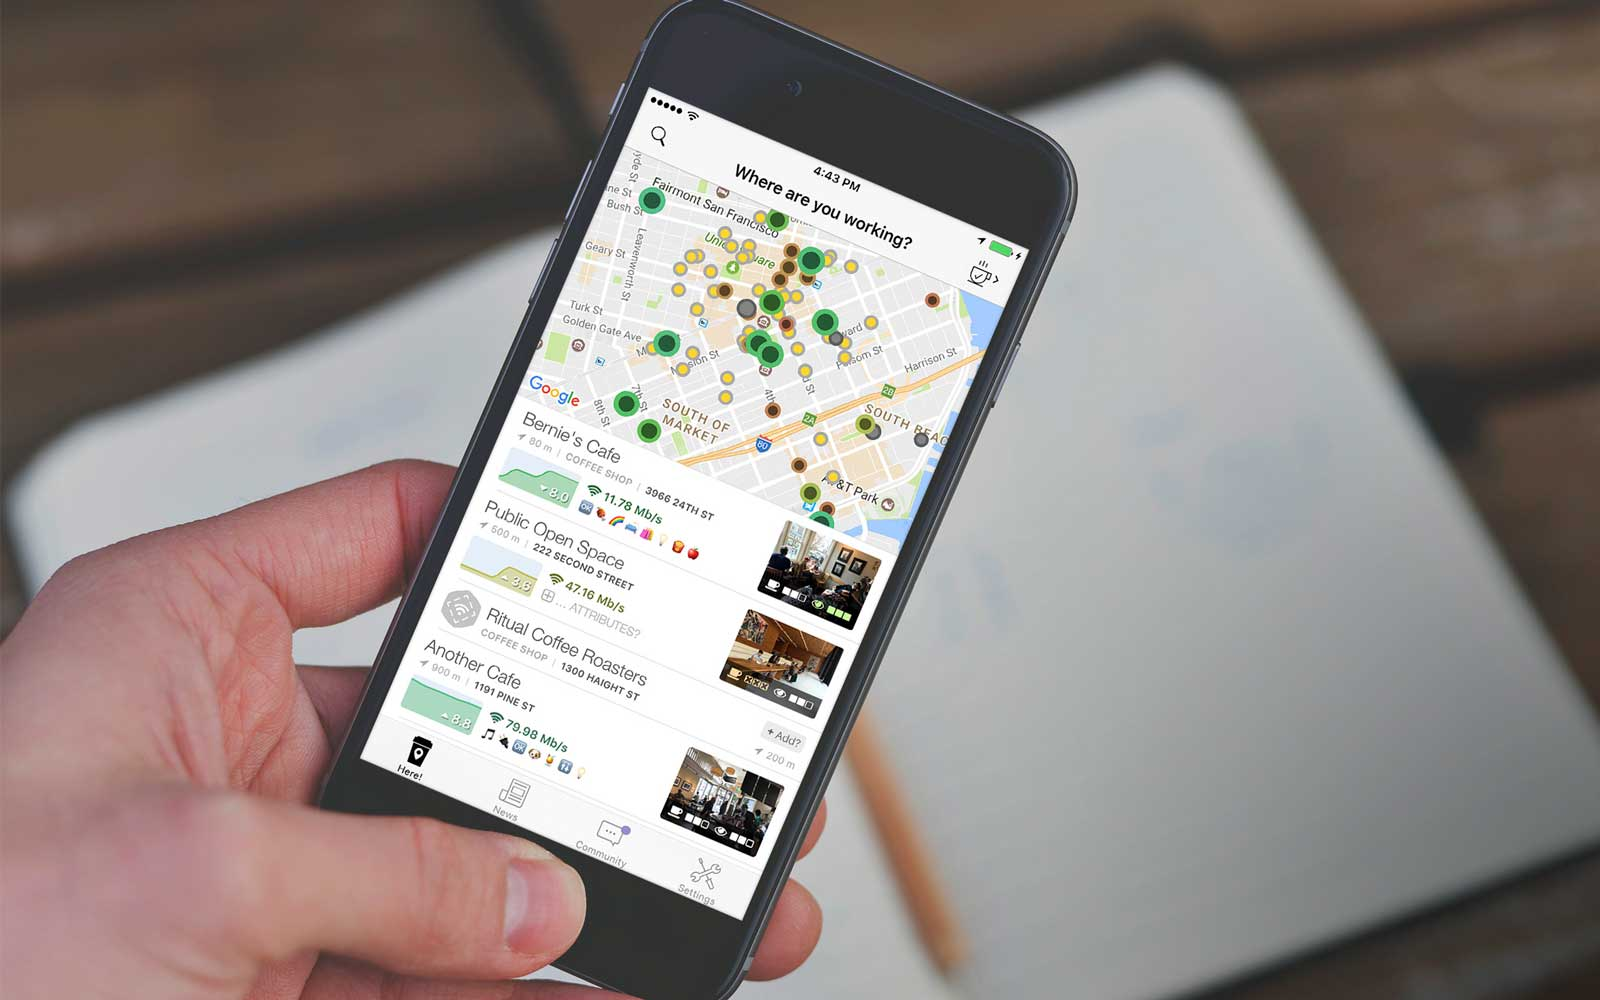 Cafe Wifi App Lets you Find Free Wifi Around the World